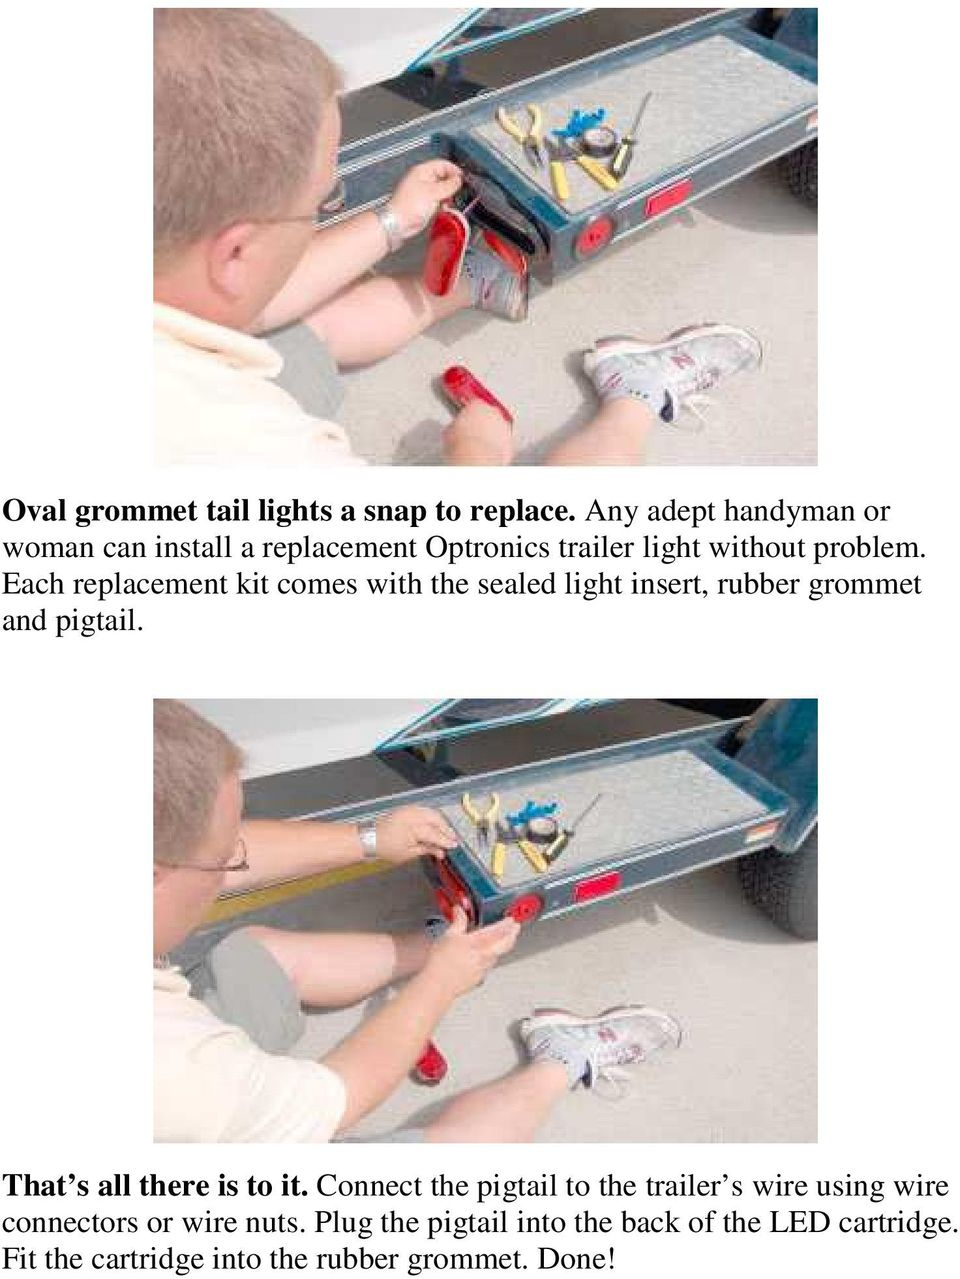 Boat Trailer Lights Replacement For Replacing Existing As Well Led Light Kit On Harbor Freight Wiring Each Comes With The Sealed Insert Rubber Grommet And Pigtail